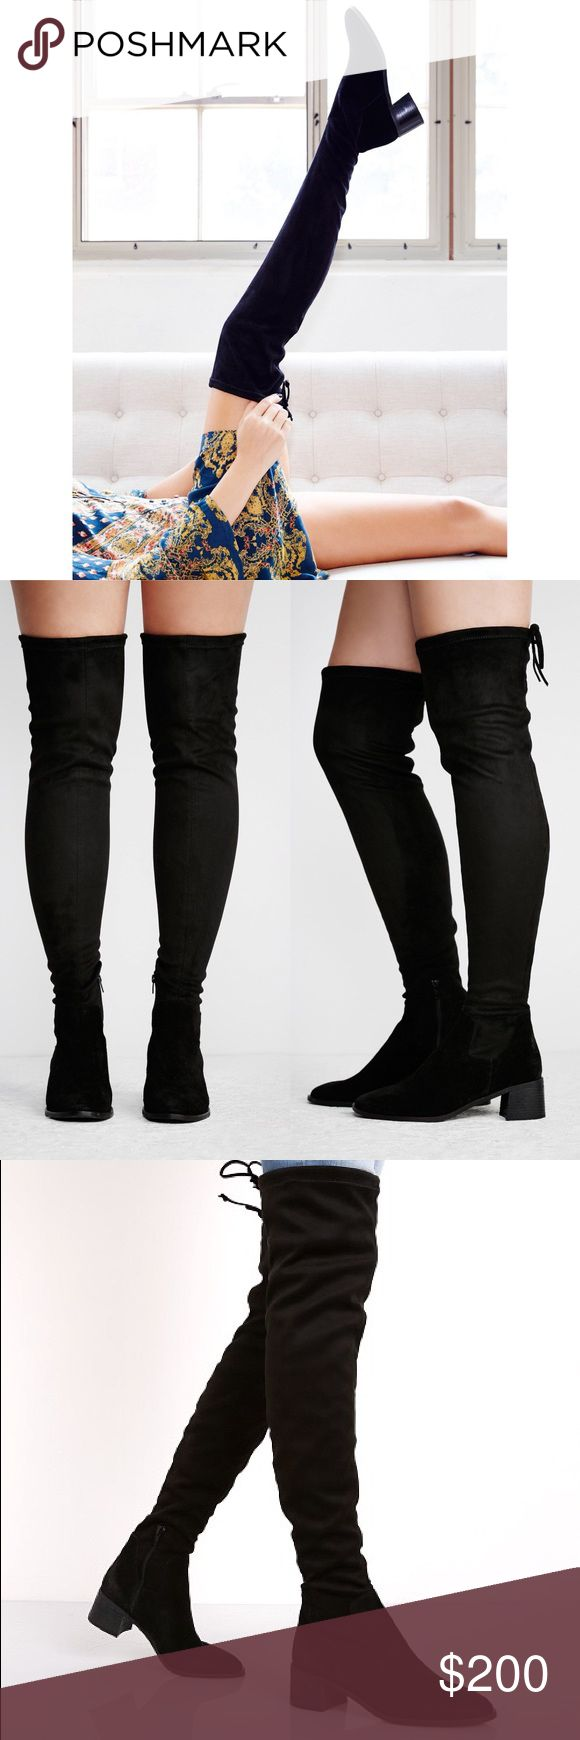 Free People Coast to Coast OTK Boots ⠀ ‣‣❊‣‣‣‣❊‣‣ NO TRADES ‣‣❊‣‣‣‣❊‣‣ ⠀ ☾Free People Coast to Coast Boots. Edgy over-the-knee boots featuring an adjustable tie at the opening. Side zipper closure for an easy on-off. Chunky block heel for a comfortable step. Retail $268. European size 39. Worn once for photoshoot Free People Shoes Over the Knee Boots